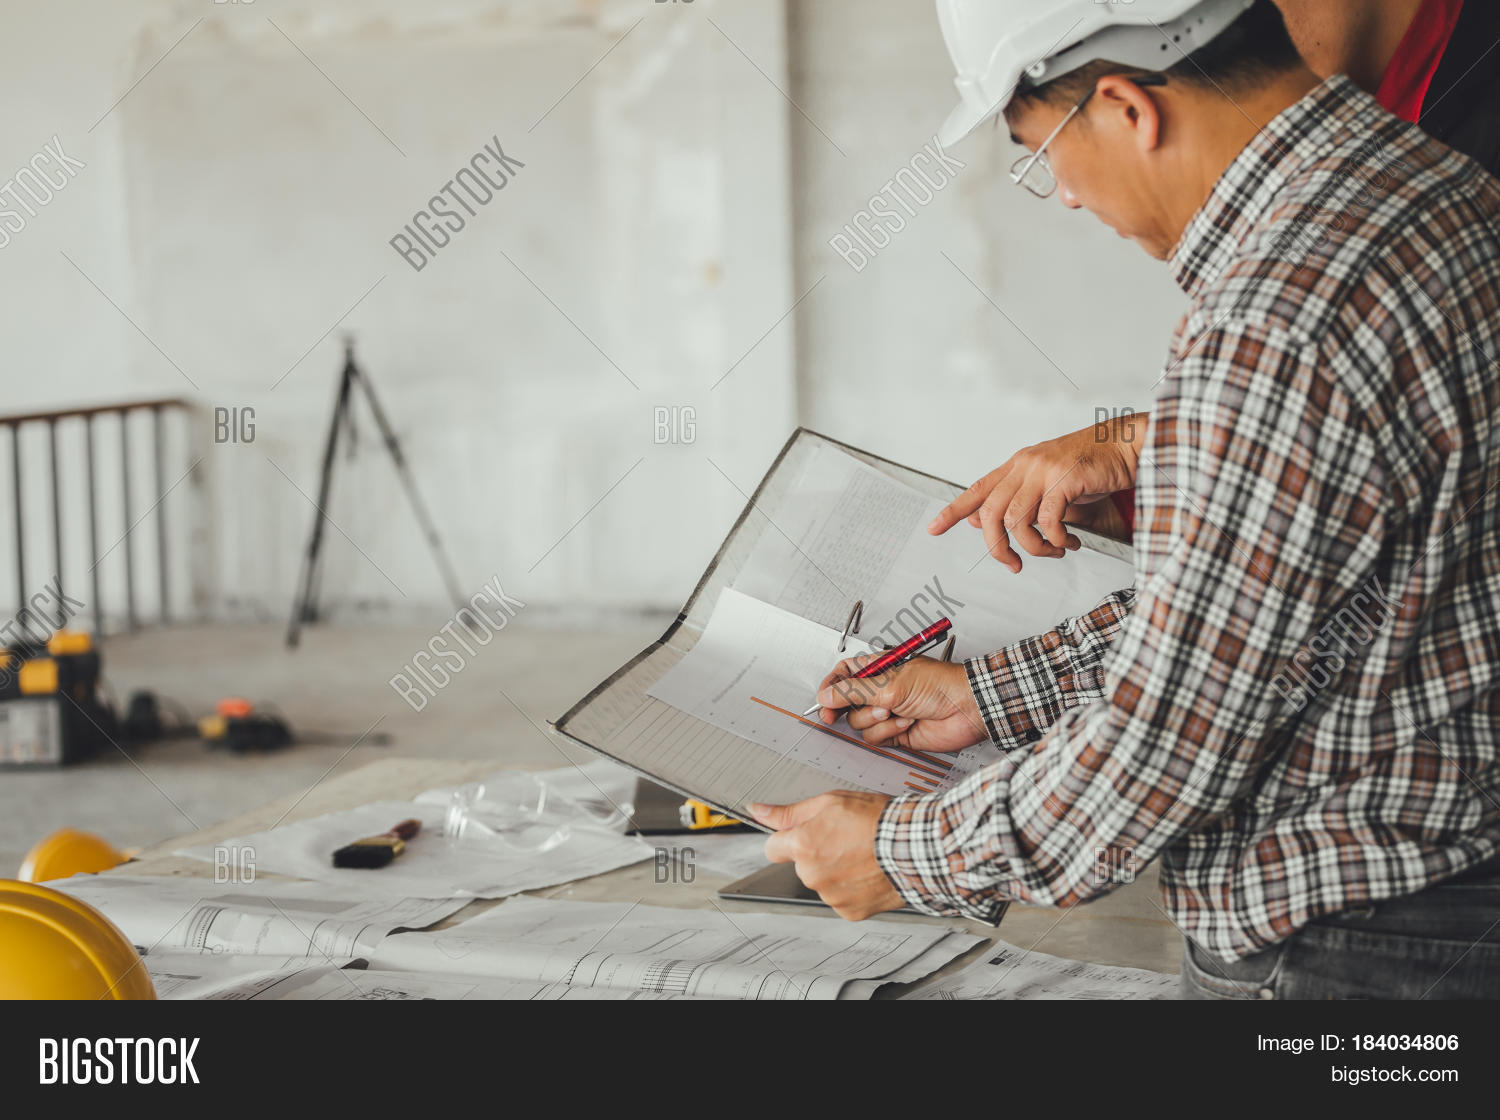 Management consulting engineers image photo bigstock management consulting with engineers working with blueprint and drawing on work table in for managem malvernweather Choice Image